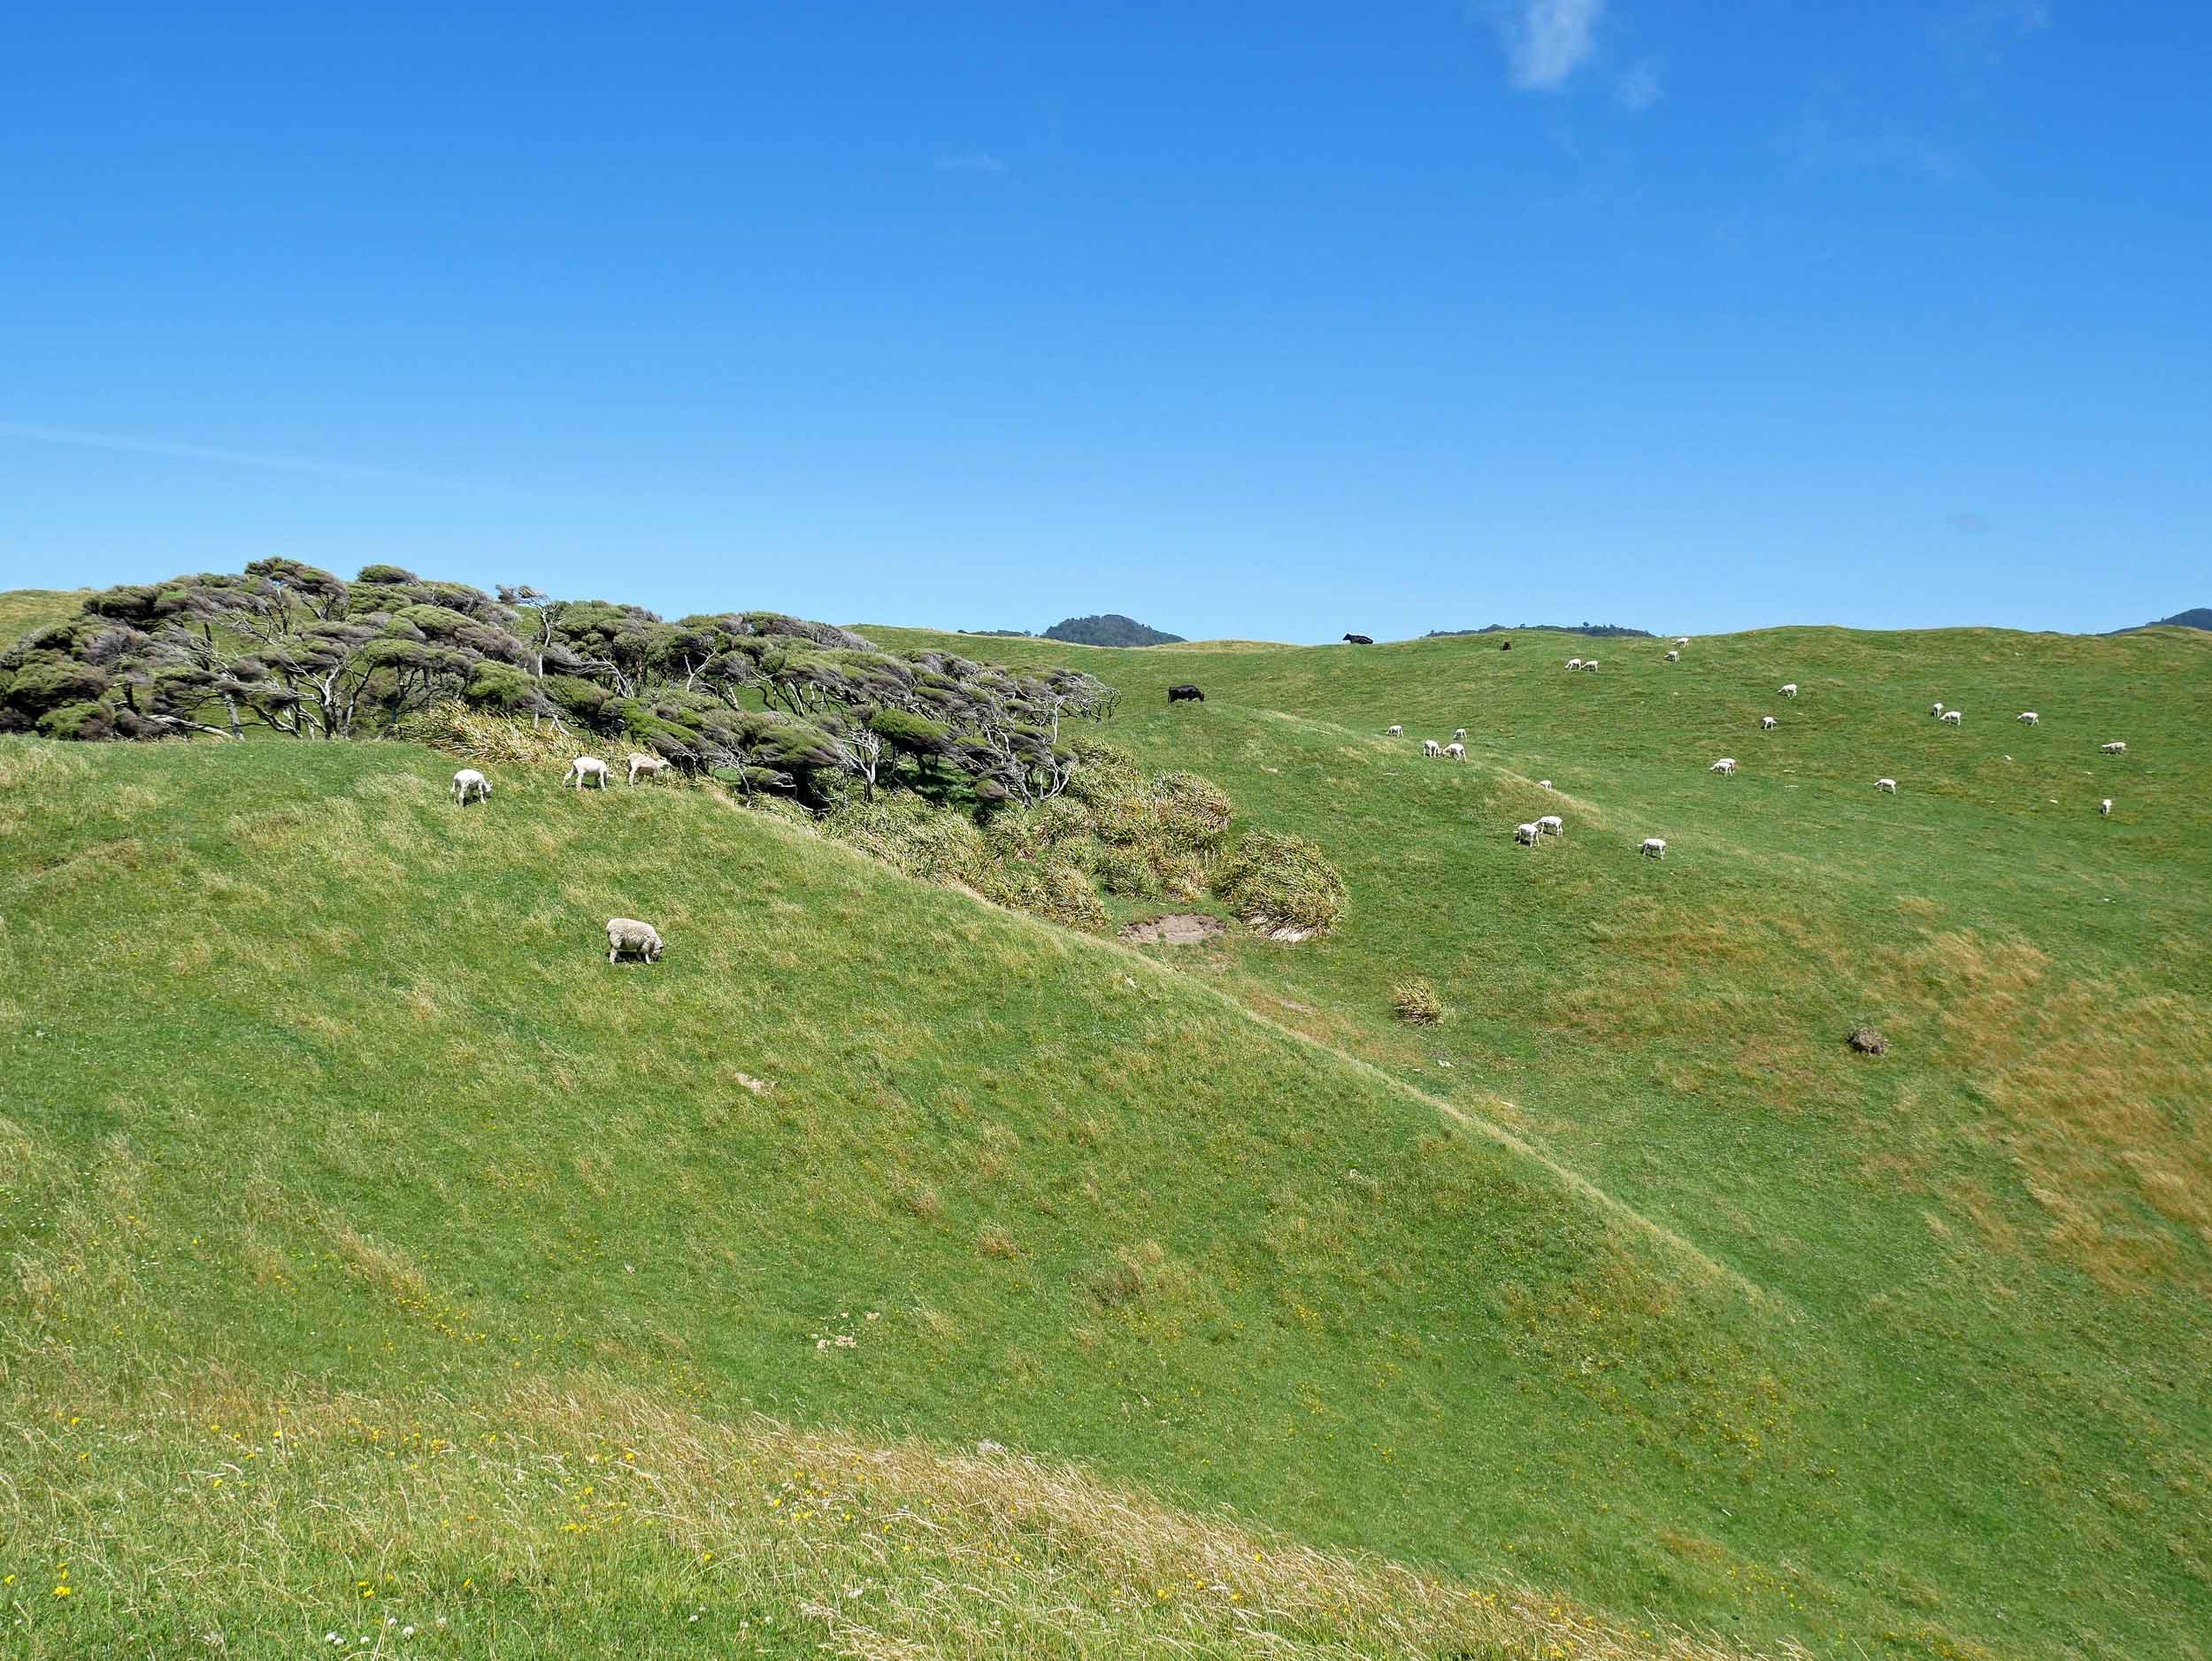 The northern most tip of the South Island, the rolling hills on top of hills are dotted with what else... more sheep (Jan 13).